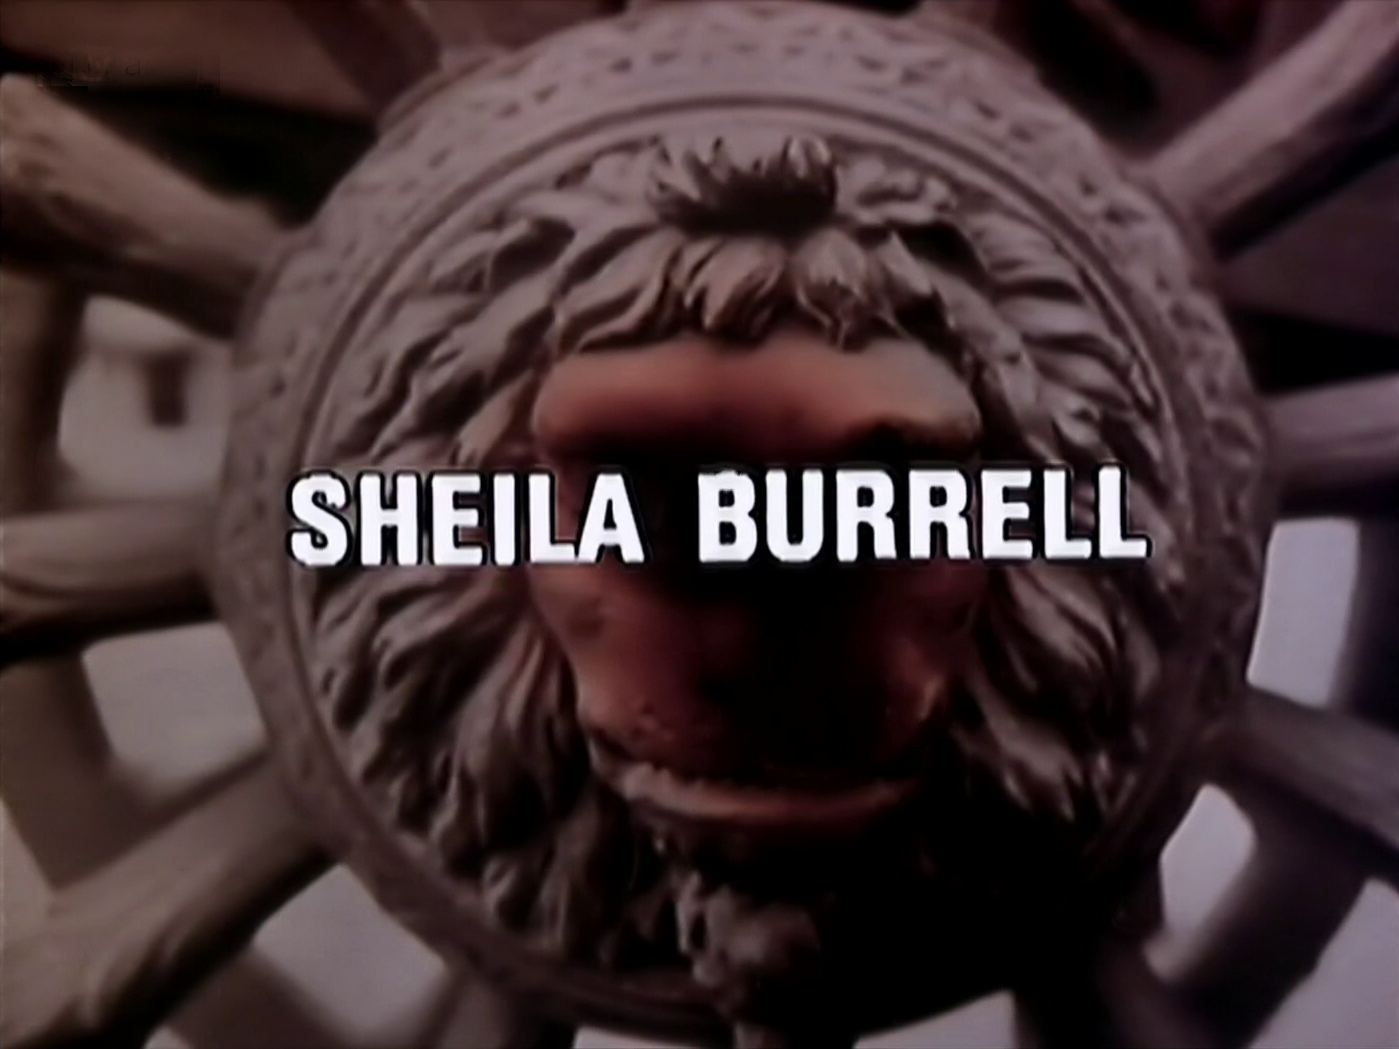 Opening credits from the 1983 'The Tribute' episode of Tales of the Unexpected (1979-1988) (4). Sheila Burrell